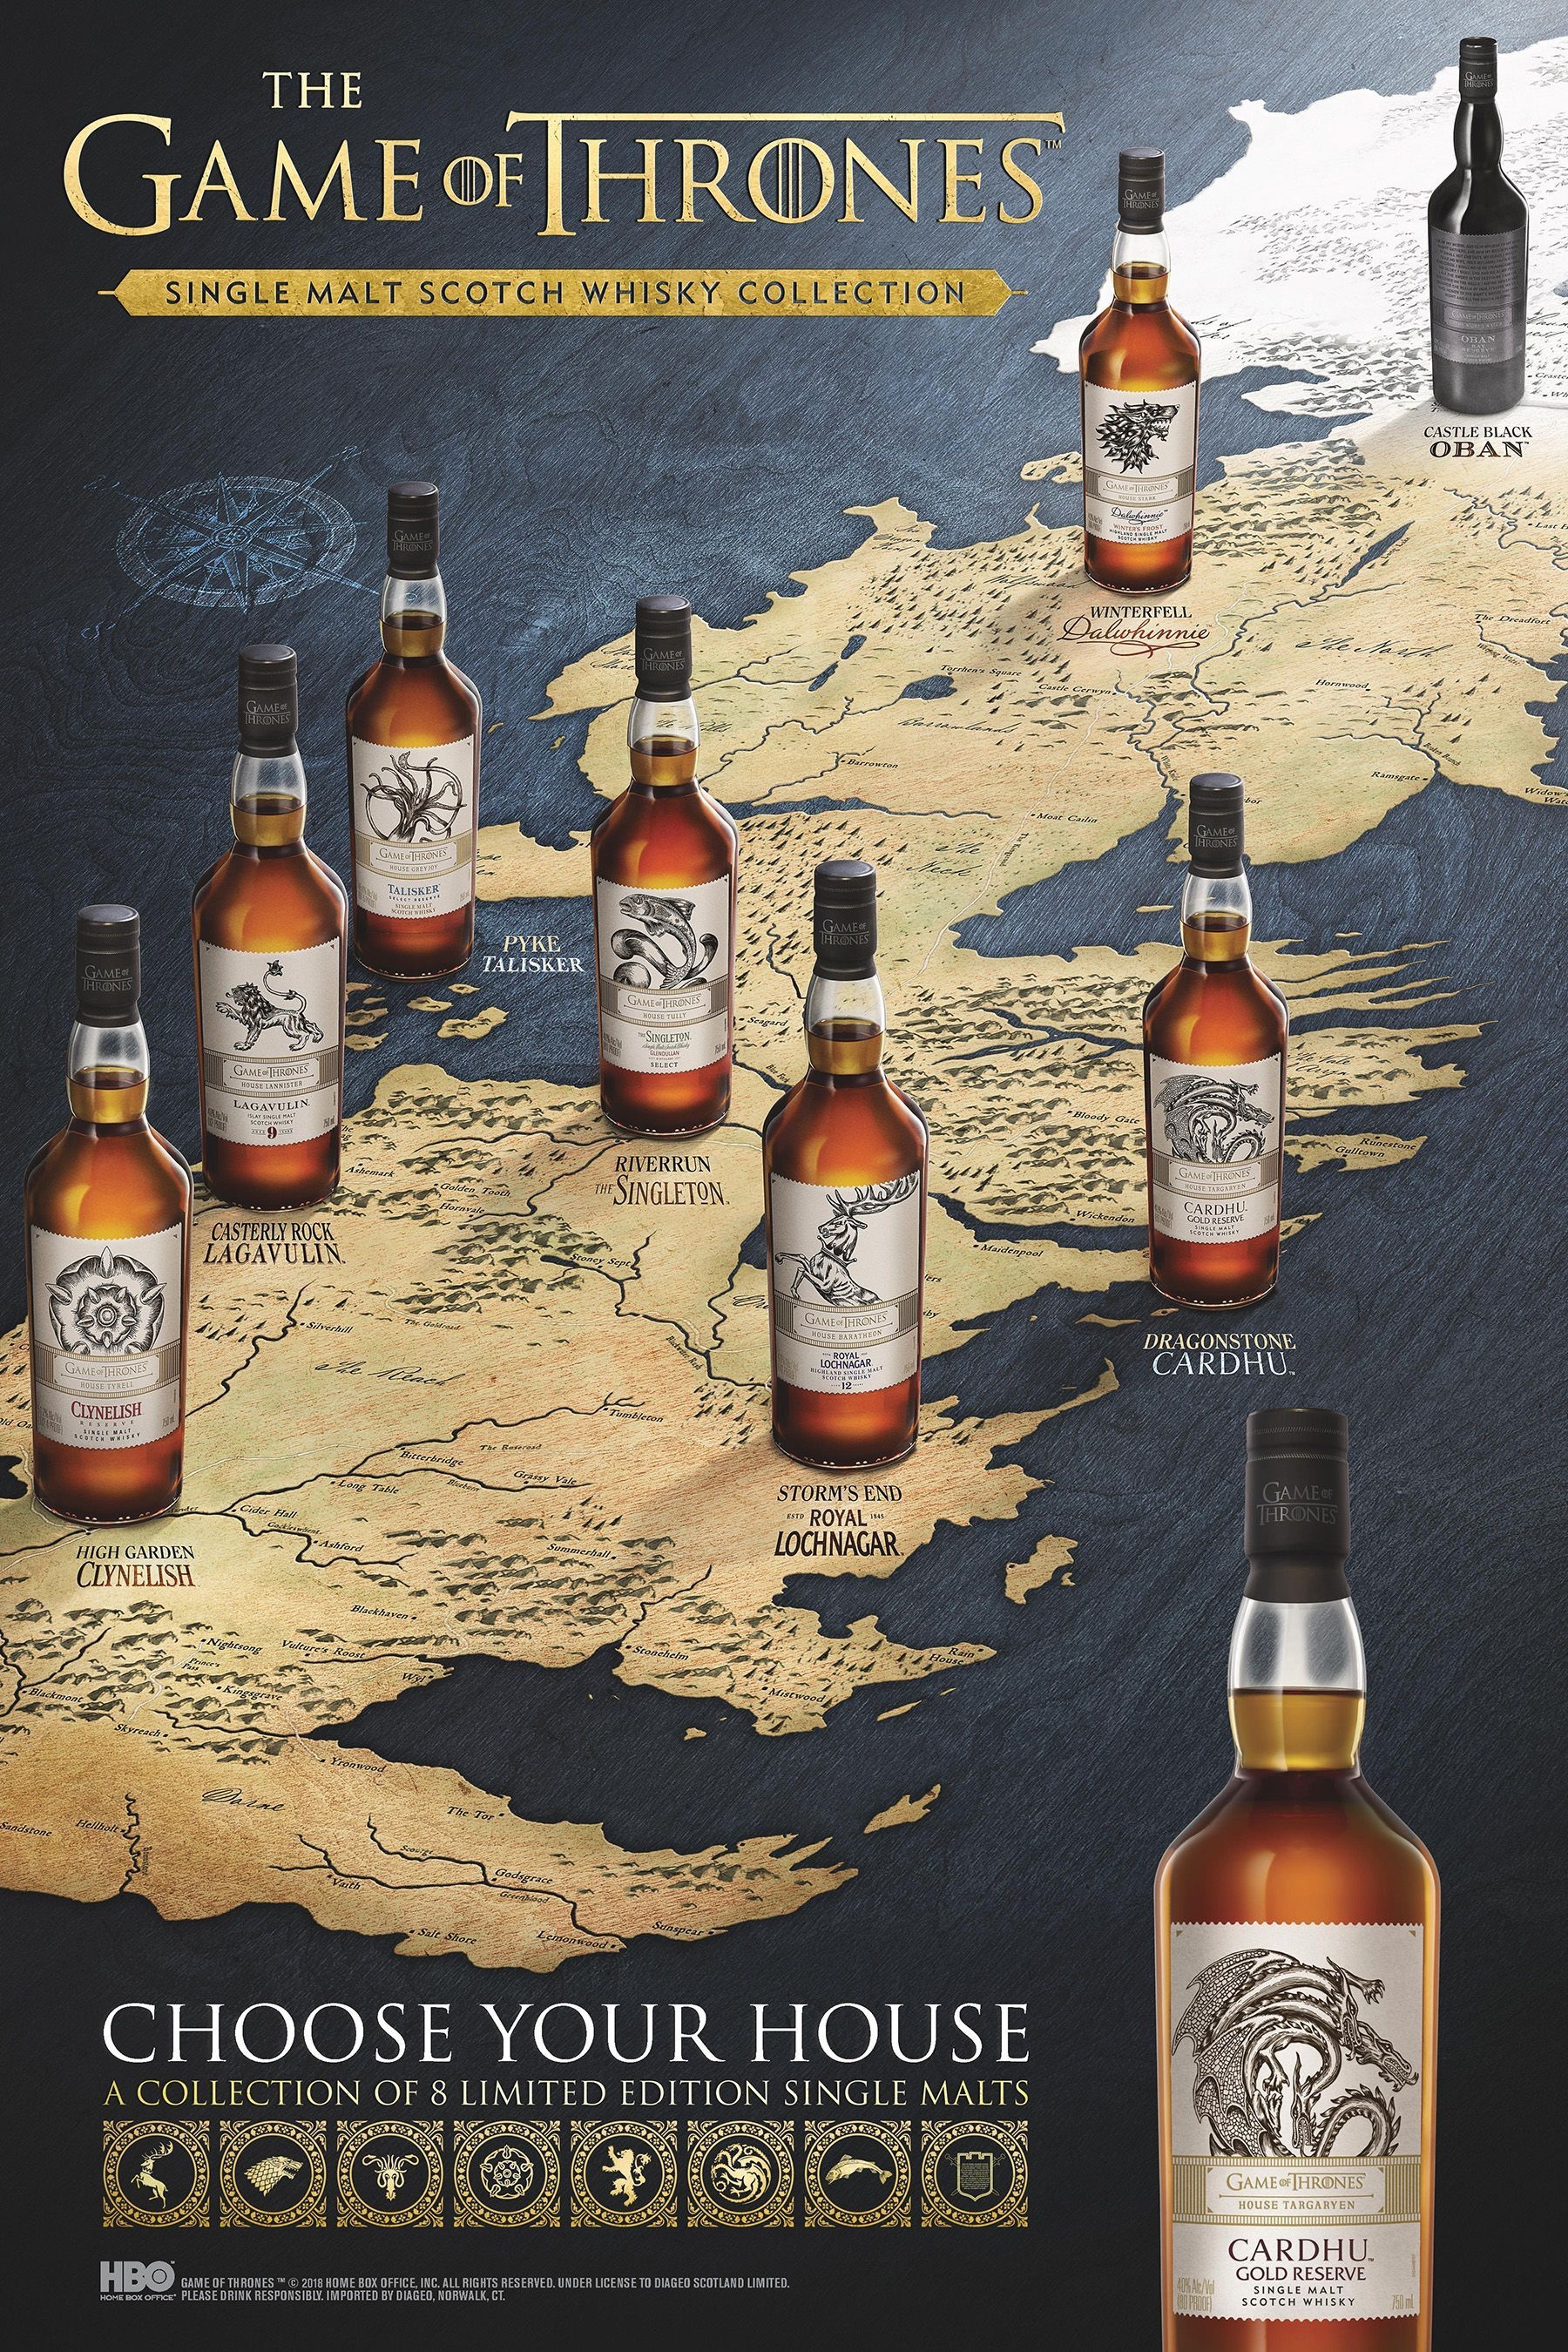 De whisky's van Game of Thrones